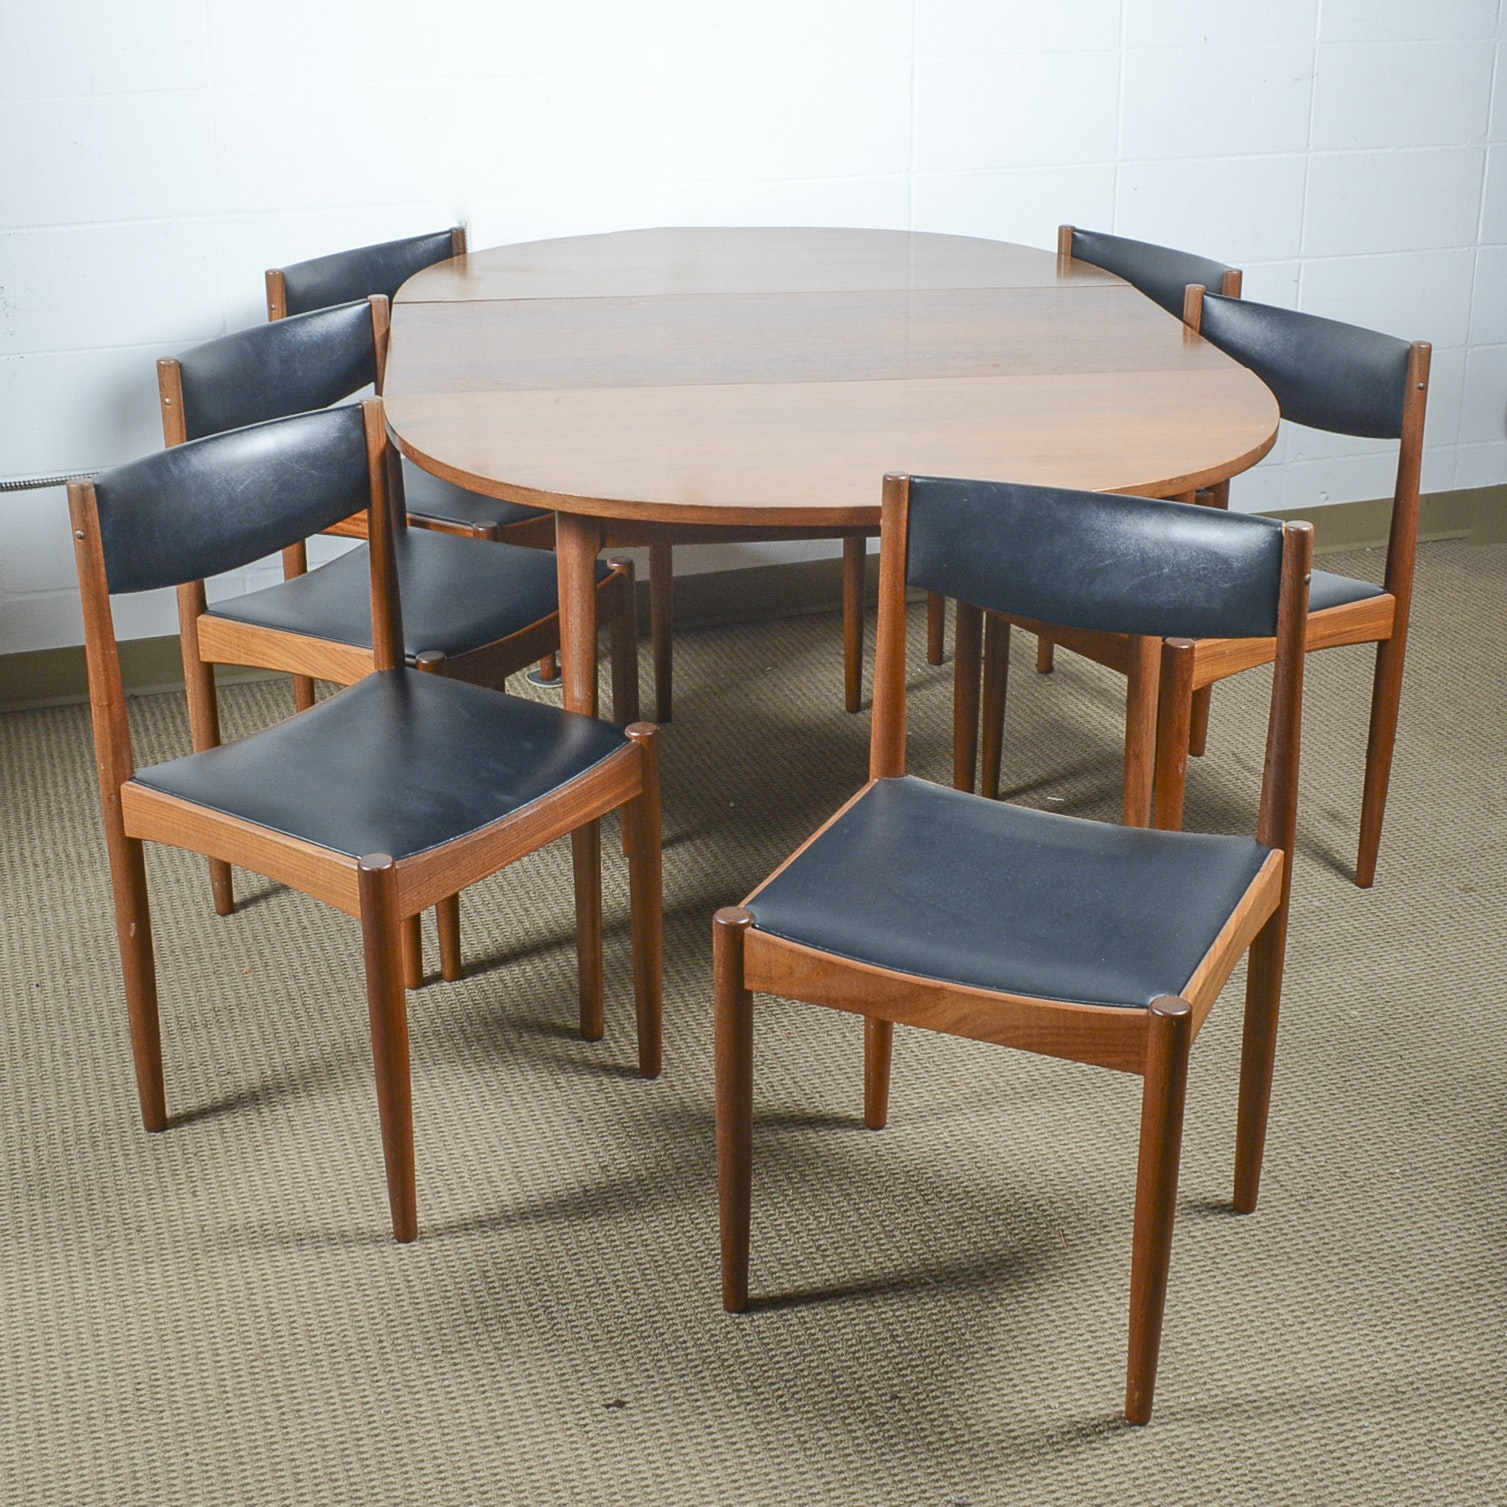 Mid-Century Modern Danish Teak Dining Table and Chairs